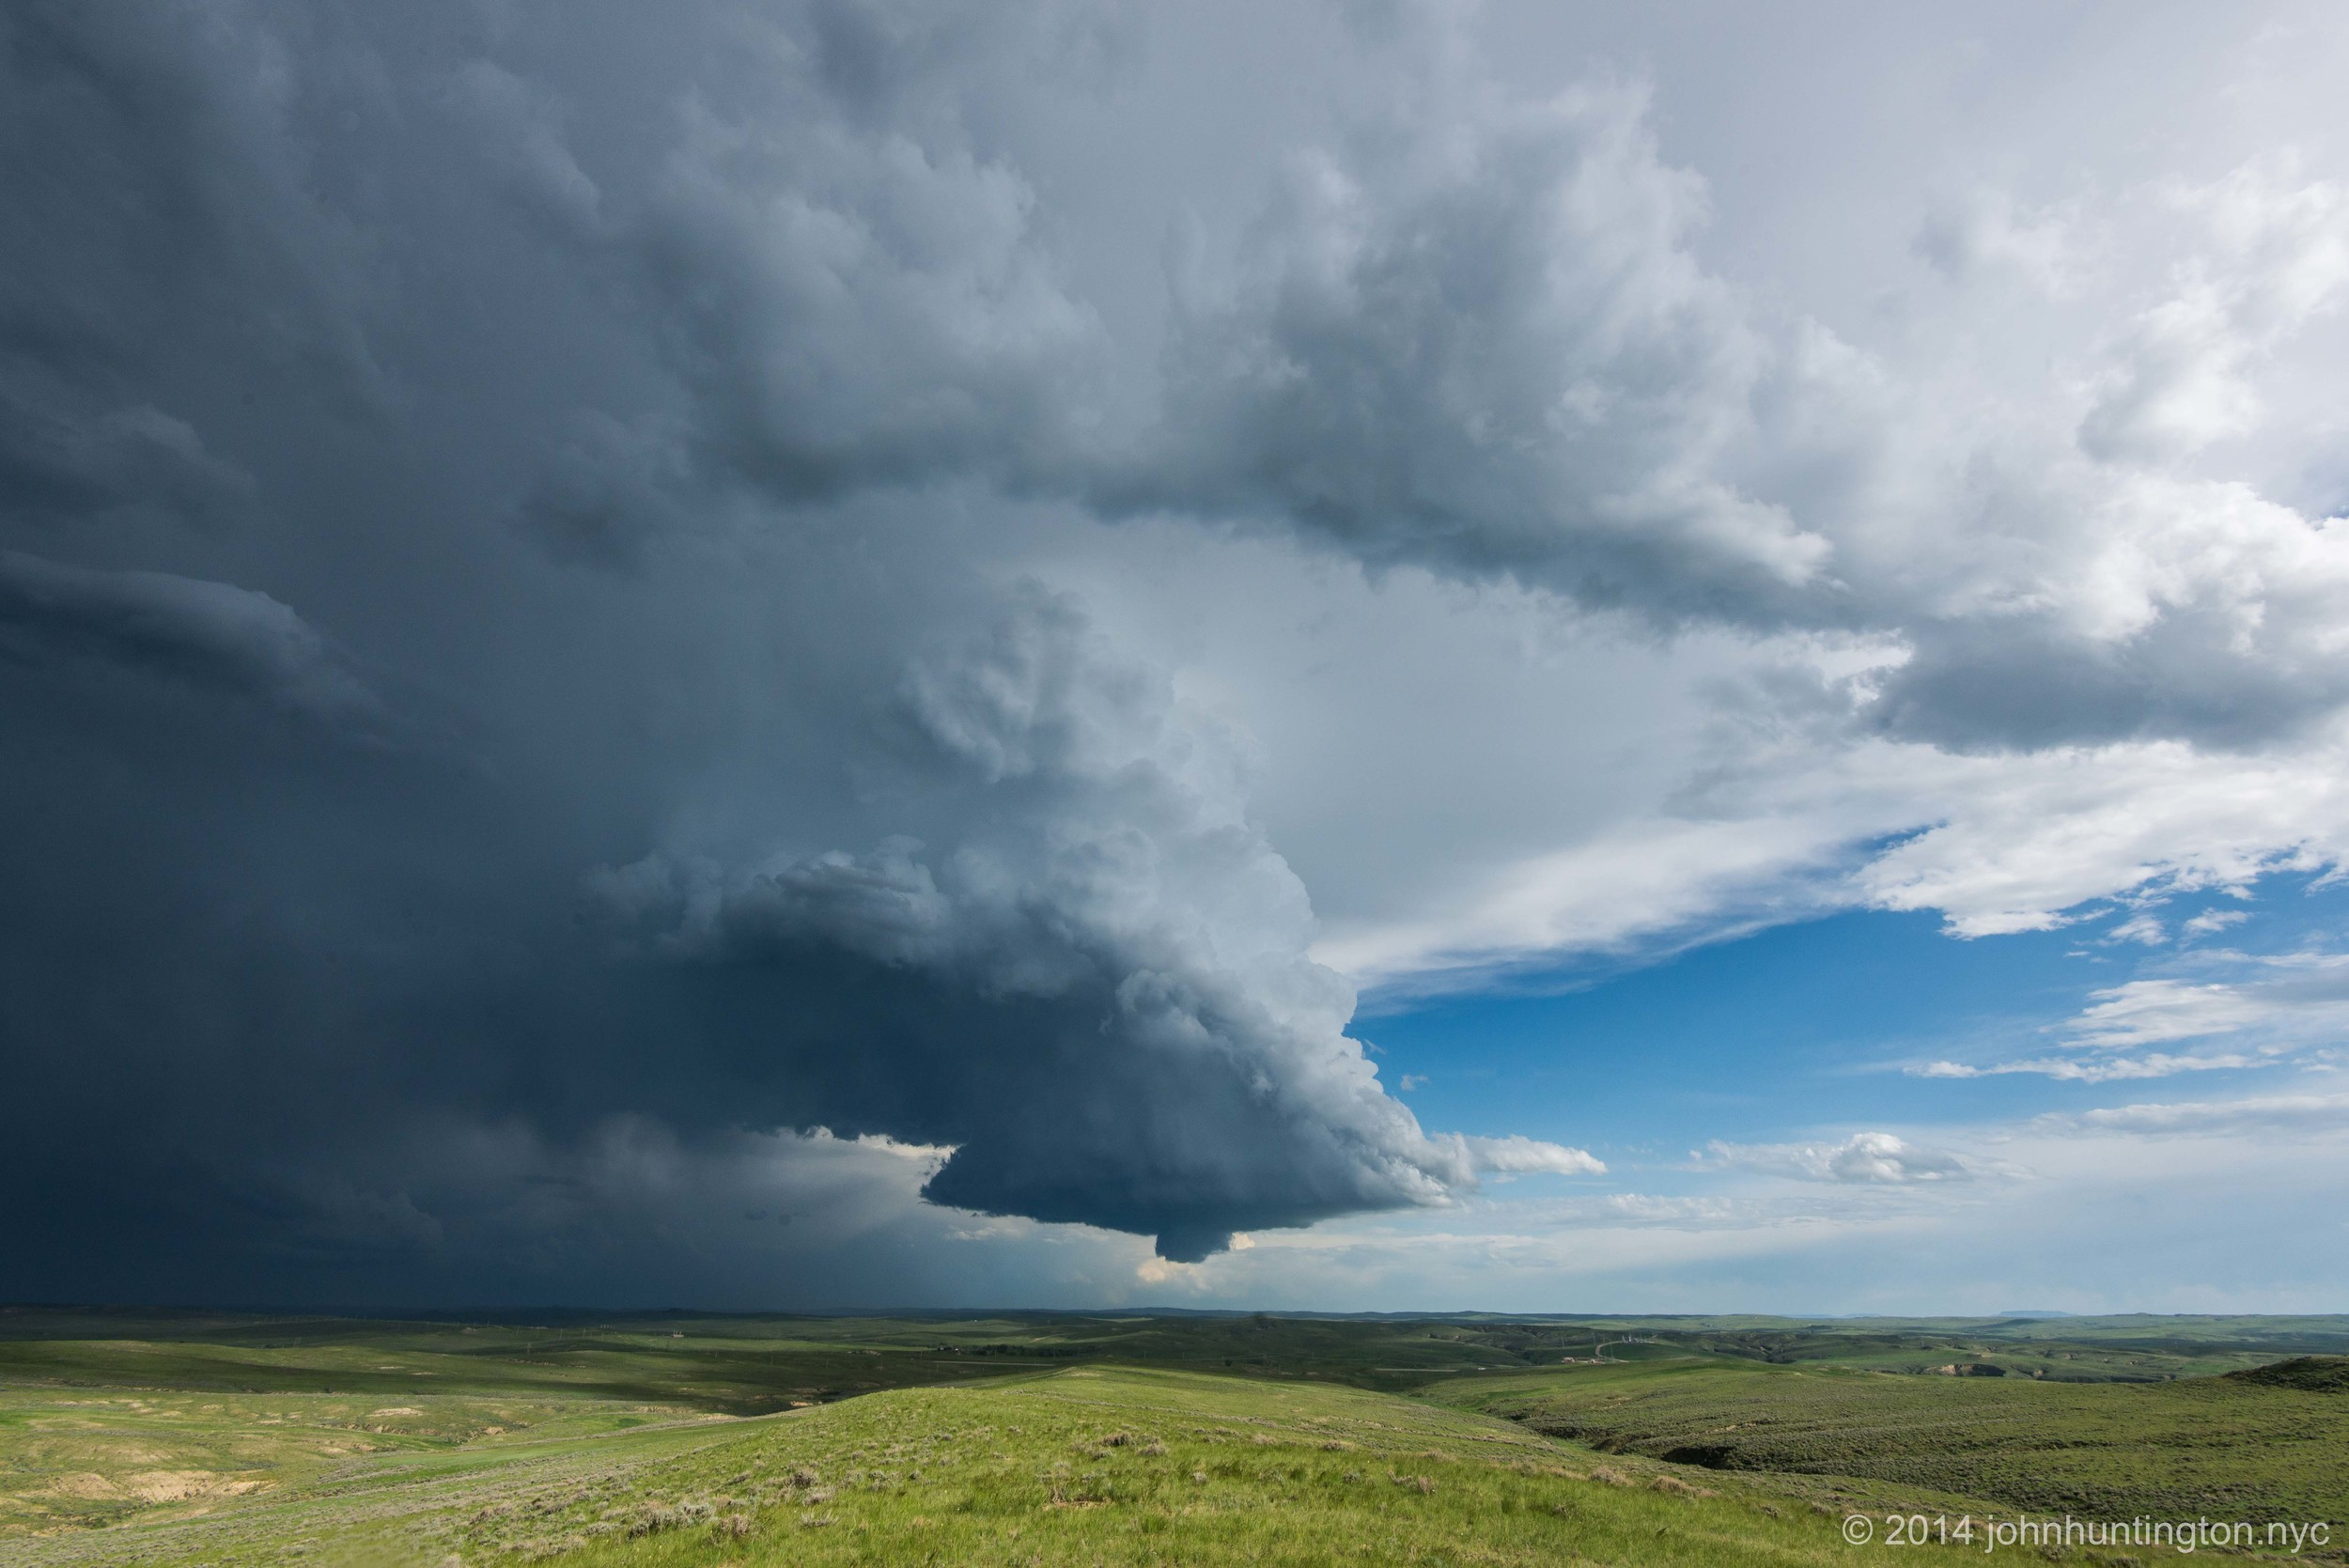 Severe Thunderstorm near Gillette, Wyoming, May 2014